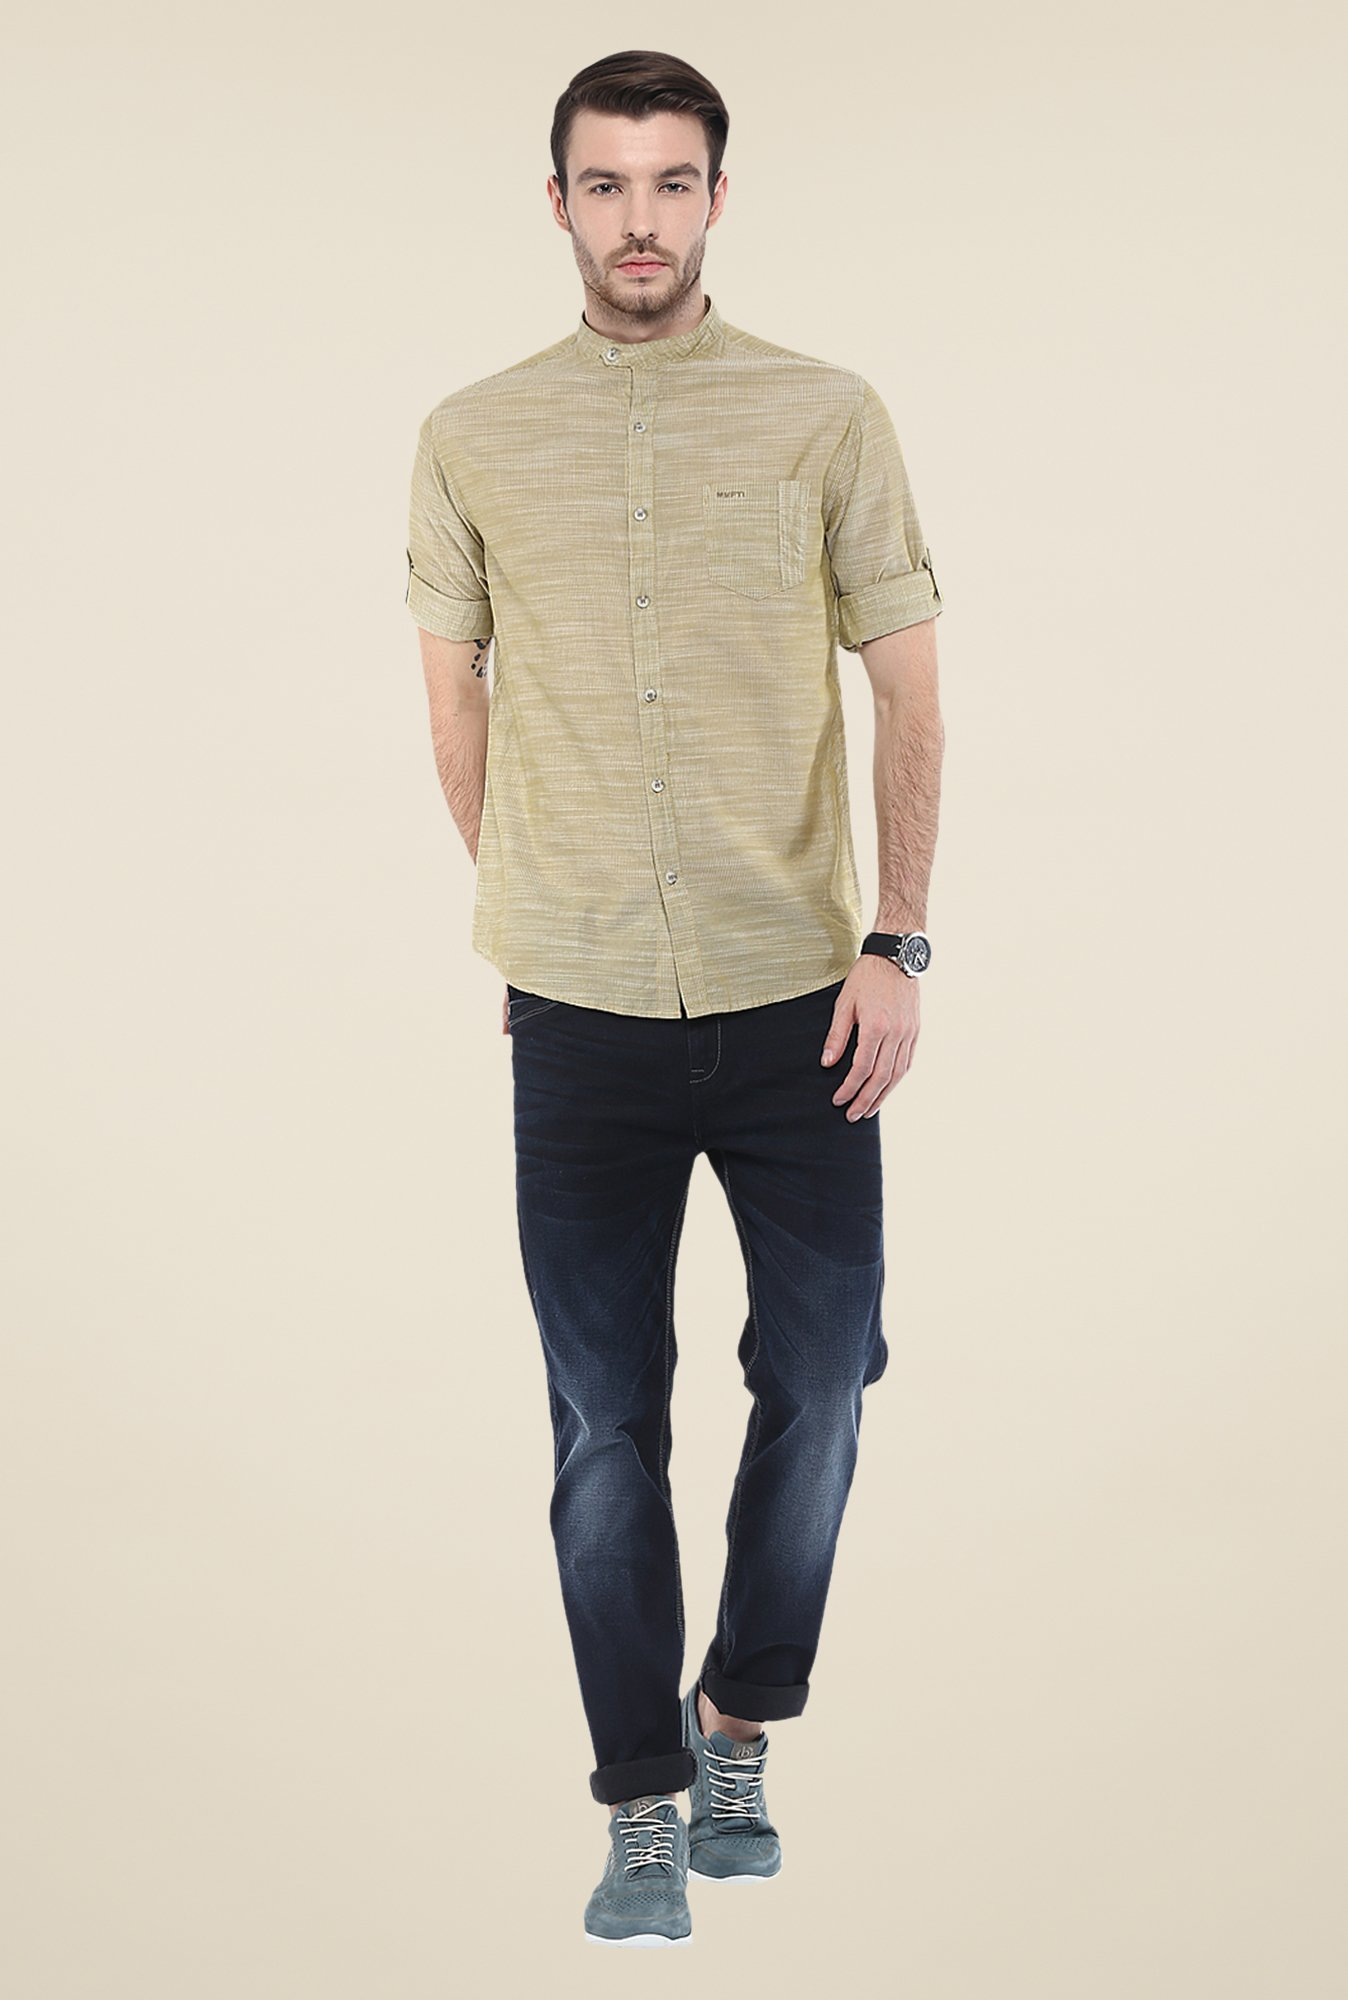 Mufti Khaki Textured Shirt